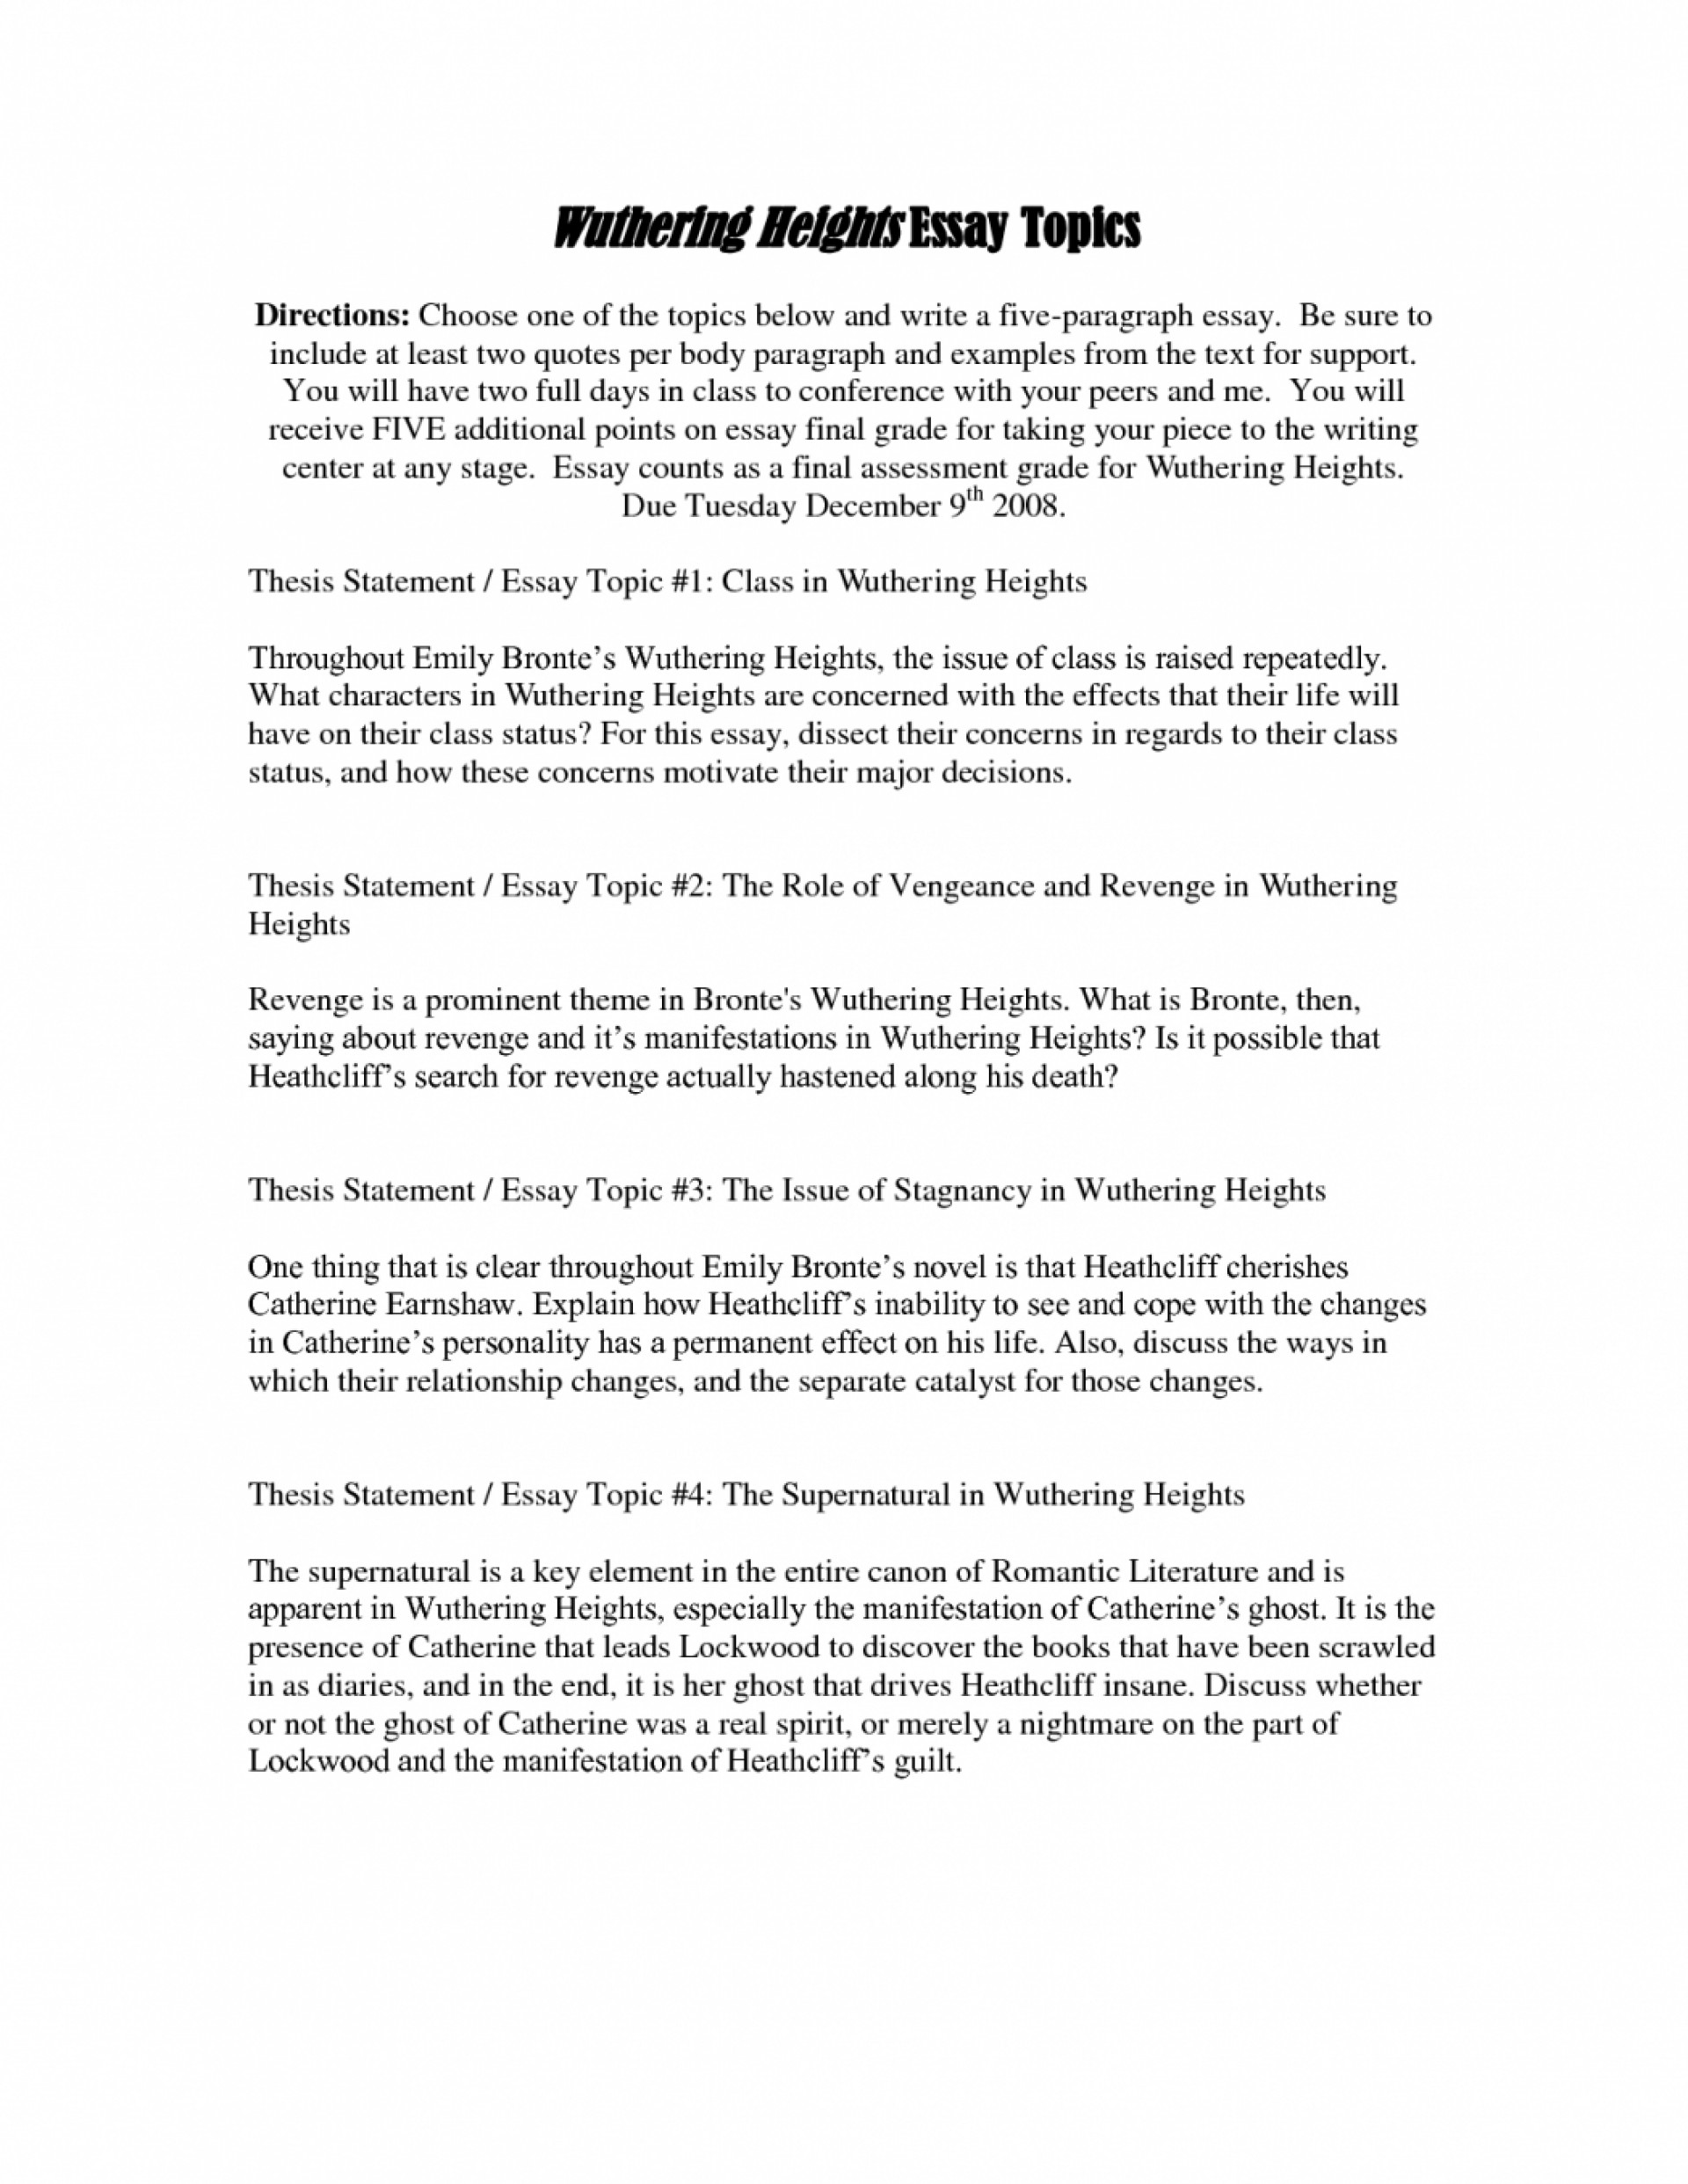 007 Define Thesis Statement In An Essay Wikipedia Step Six From To Writing 8au18 Dbq 1048x1356 Stirring Definition Examples For Argumentative Template Example 1920